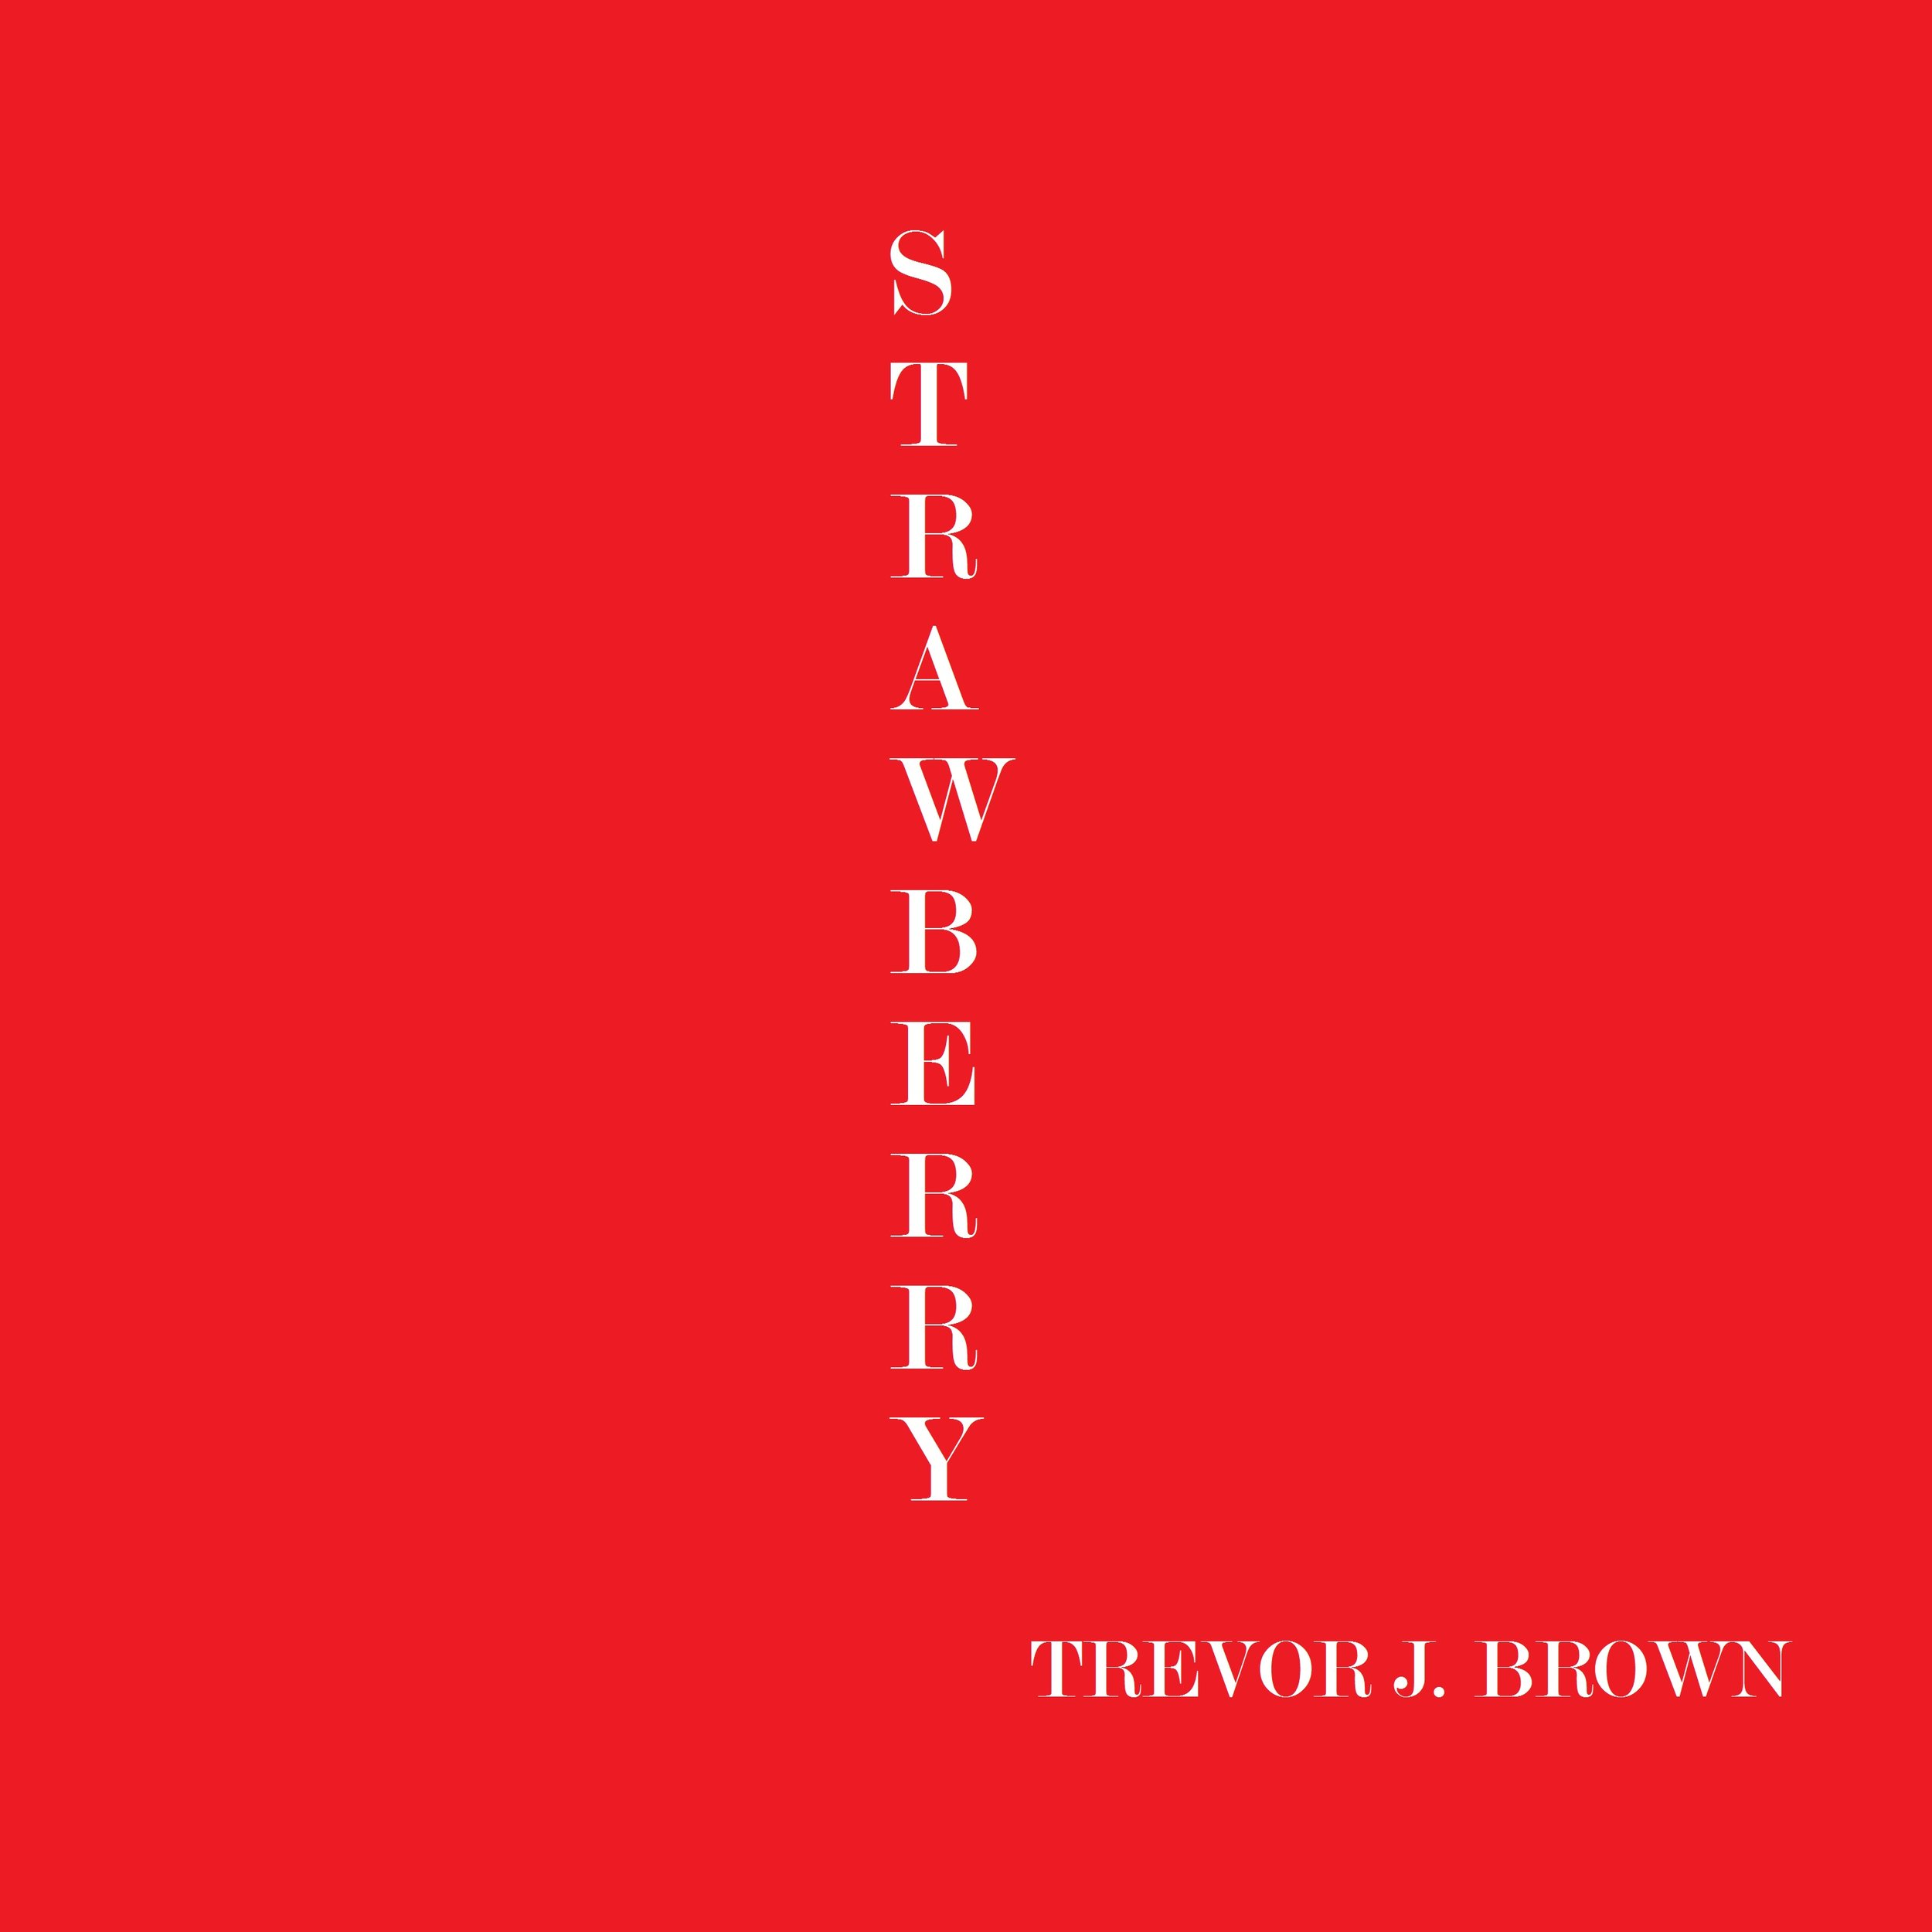 Strawberry by Trevor J. Brown - An authentic and sweet musical adventure with no apologies and a big heart. Some songs may require some dancing shoes.